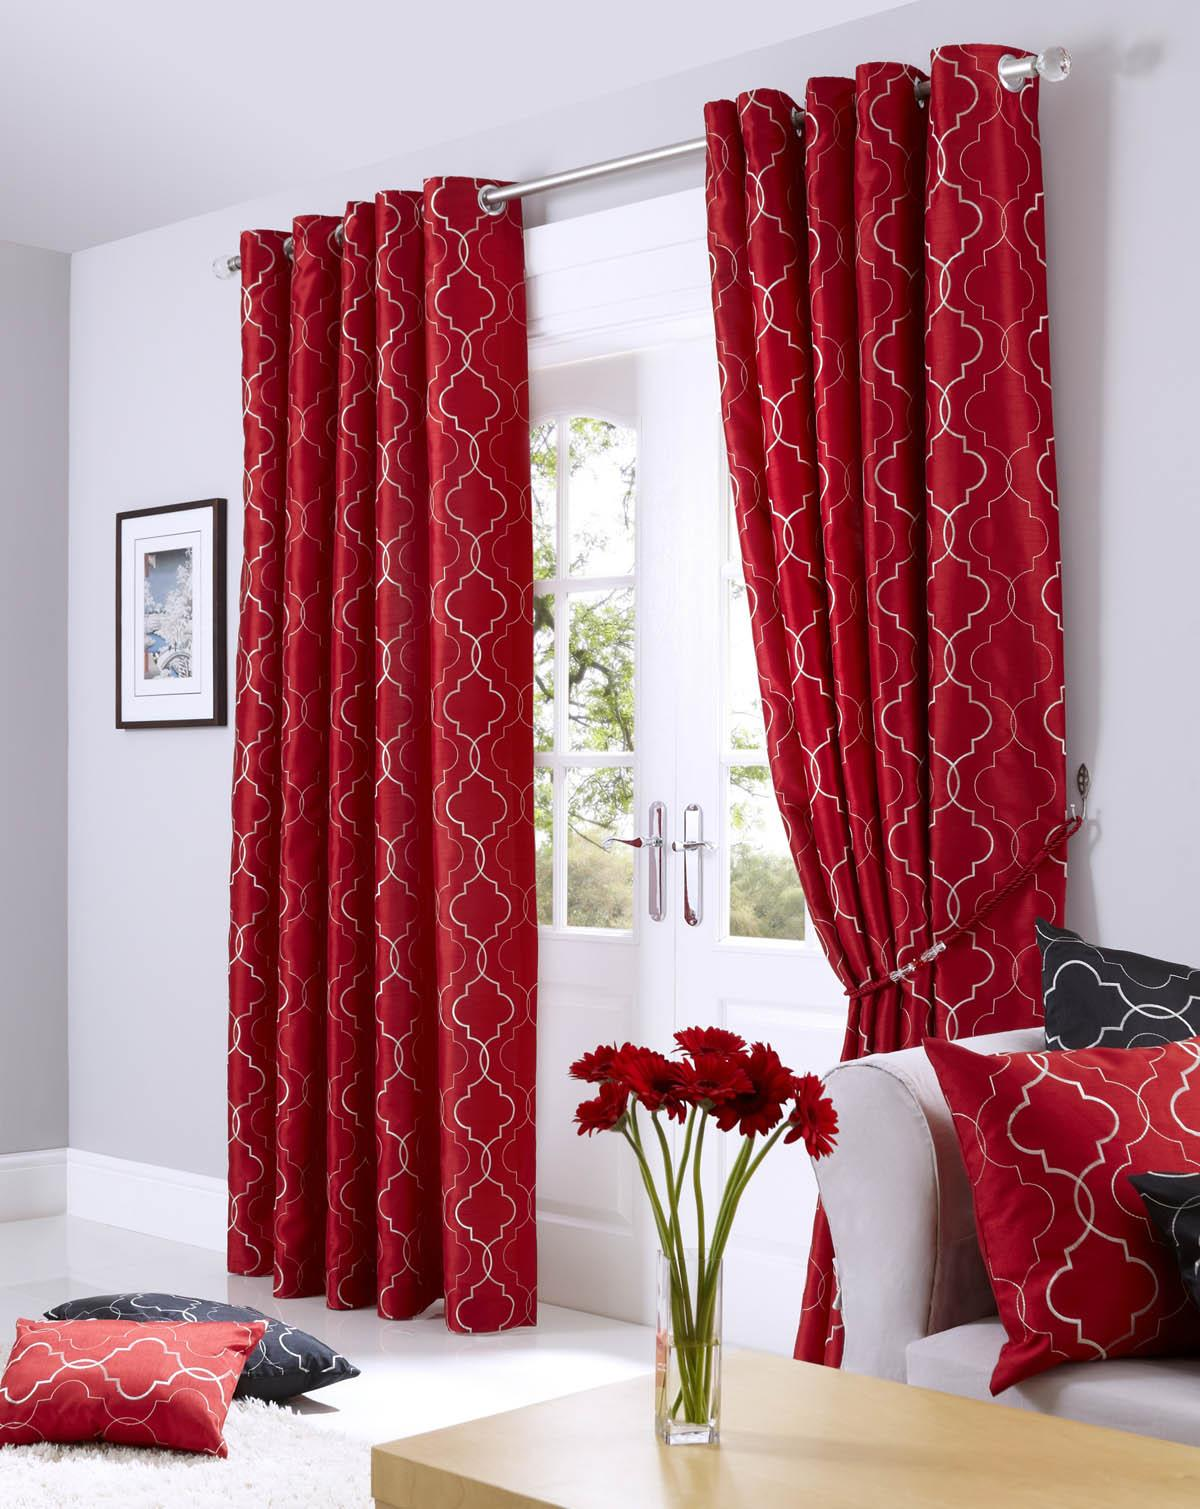 Living room curtains red - Midtown Eyelet Lined Curtains